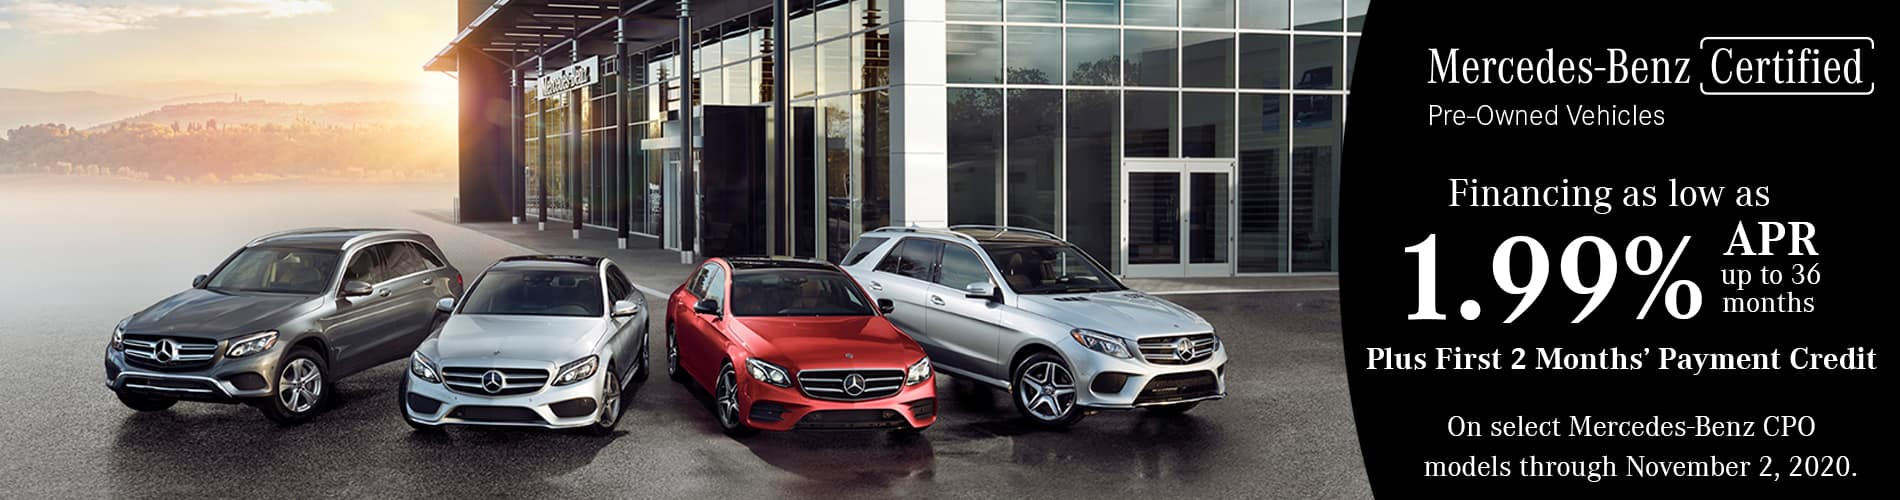 Mercedes-Benz Certified Pre-Owned Vehicles Sales Event at Keenan Motors